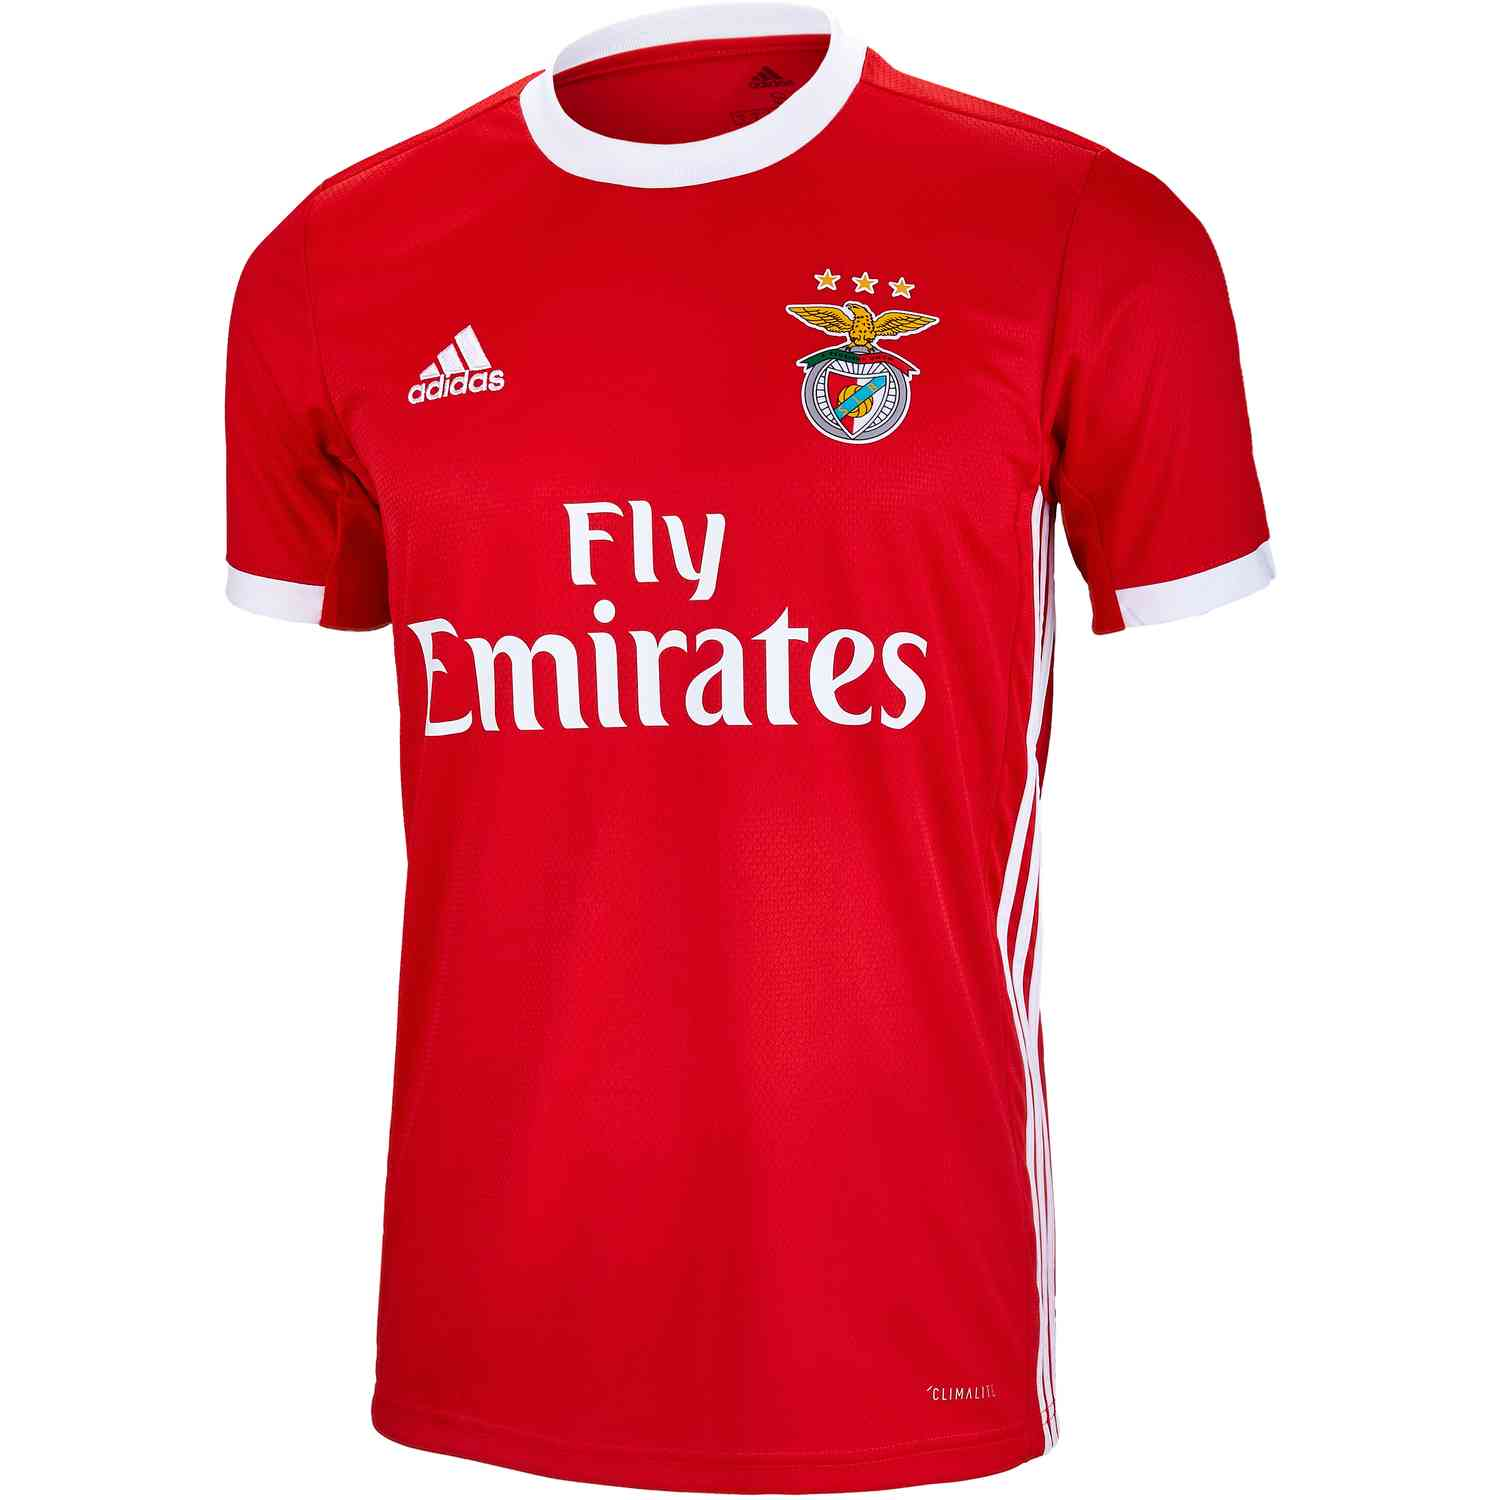 40feb64762e SL Benfica Adidas Home jersey 2019/20 – Hooked on Soccer